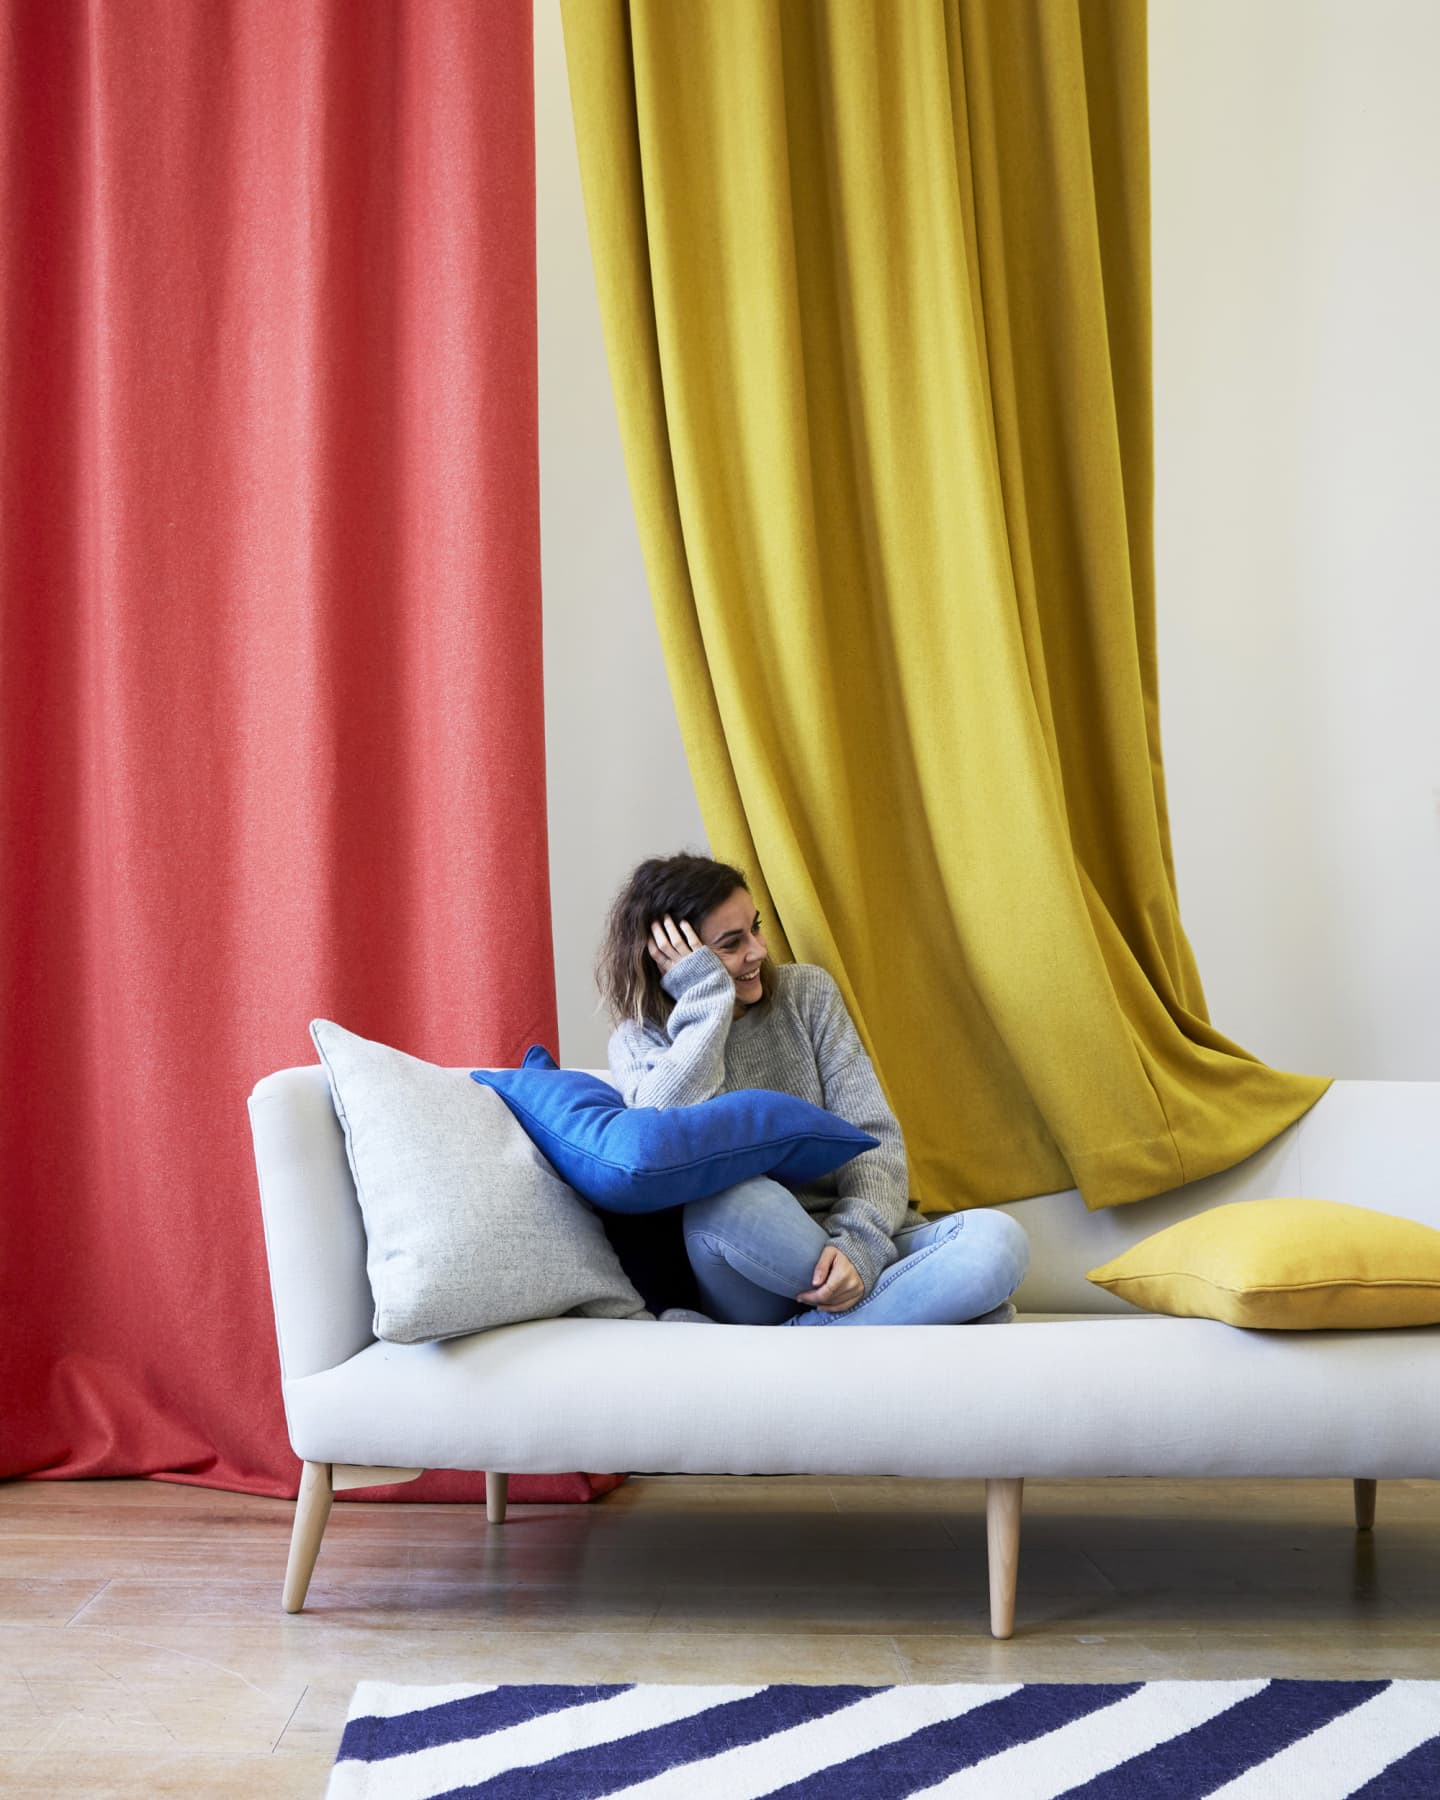 lady on a sofa in front of Red and yellow curtains